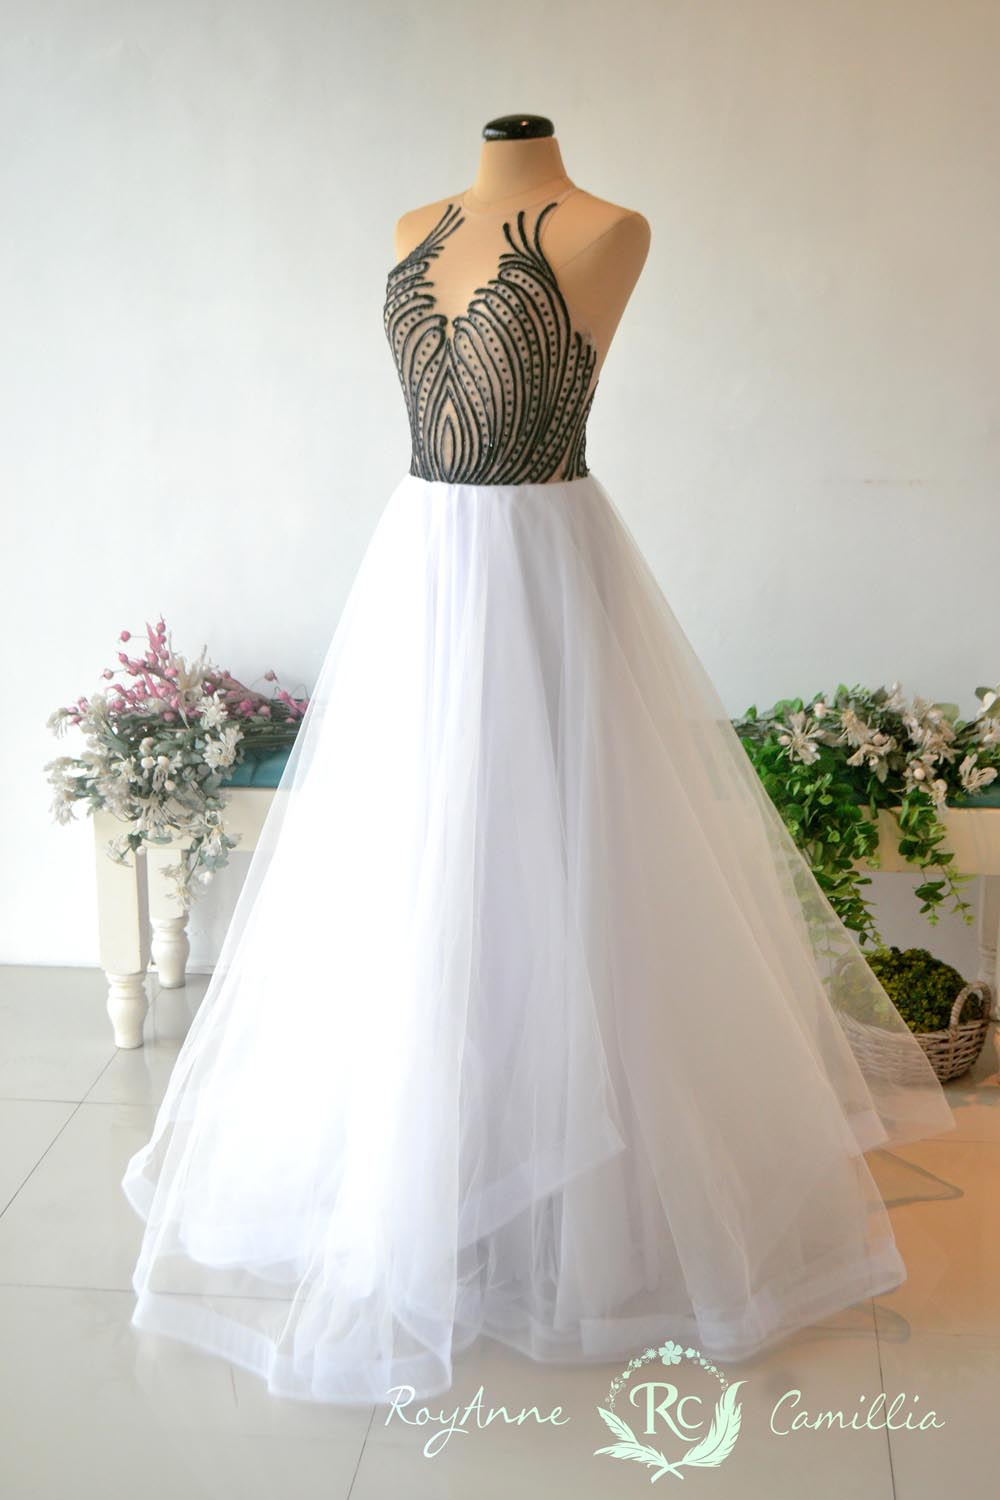 Ashmina royanne camillia couture bridal gowns and gown for Where can i rent a wedding dress